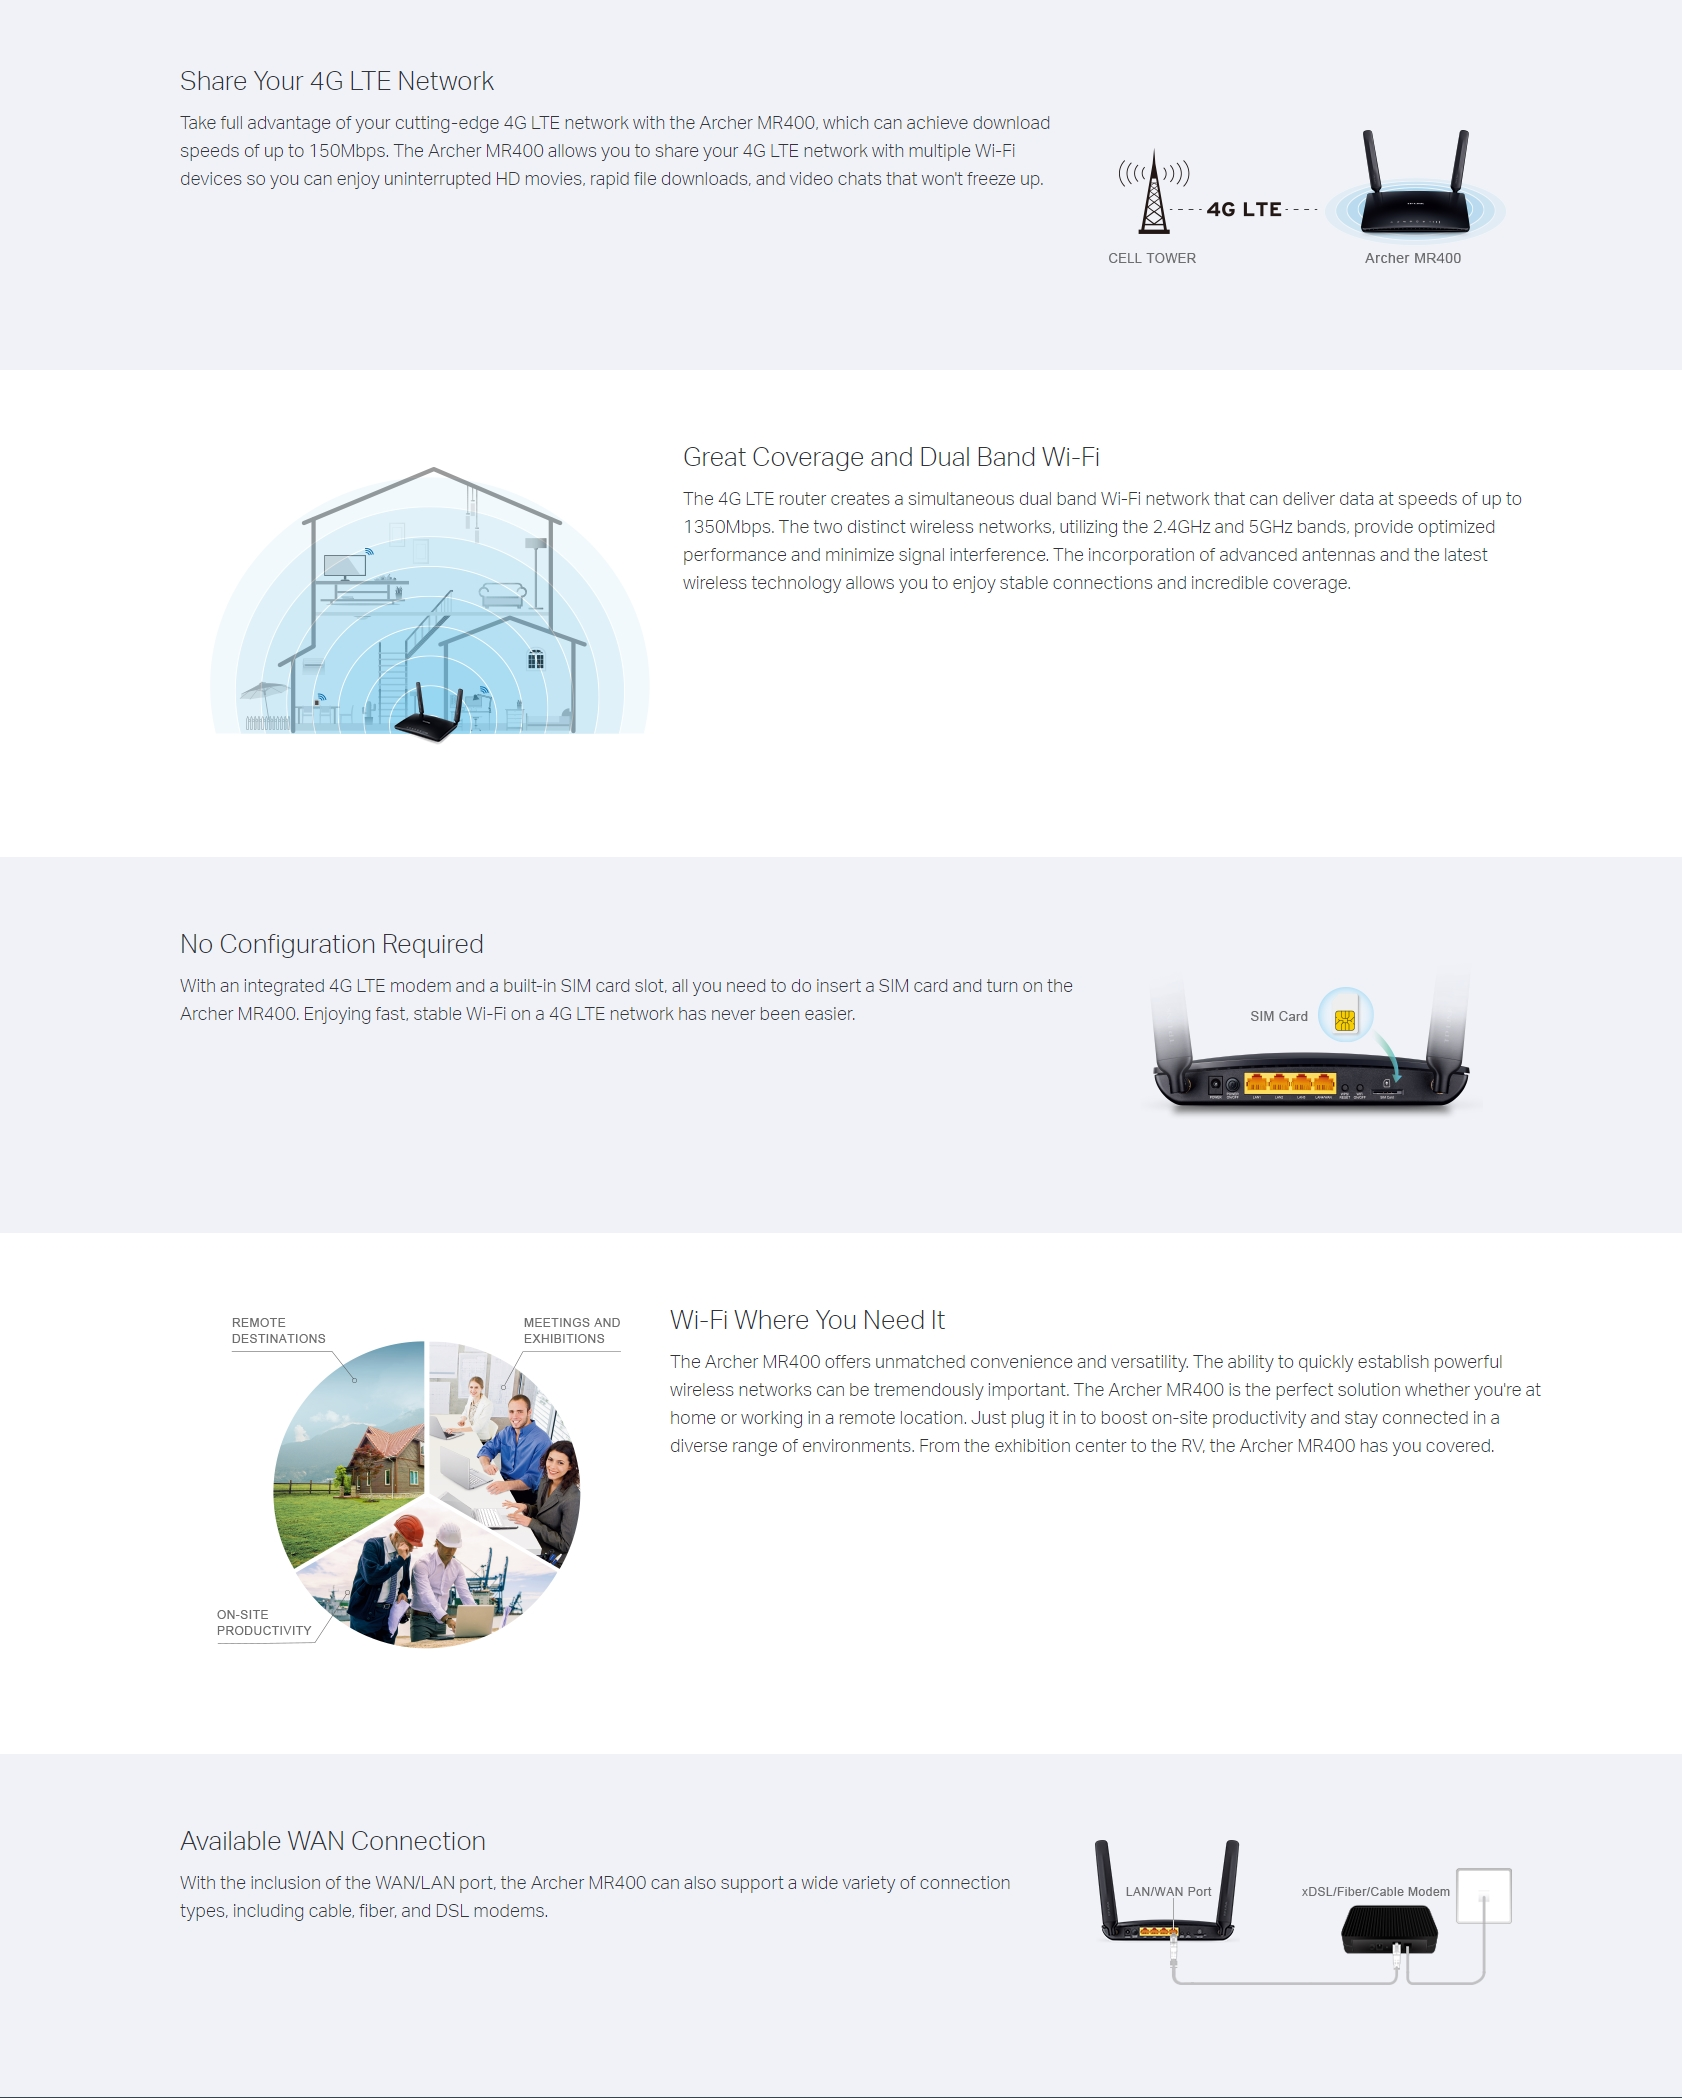 A large marketing image providing additional information about the product TP-LINK Archer MR400 AC1200 Wireless Dual Band 4G LTE Router - Additional alt info not provided